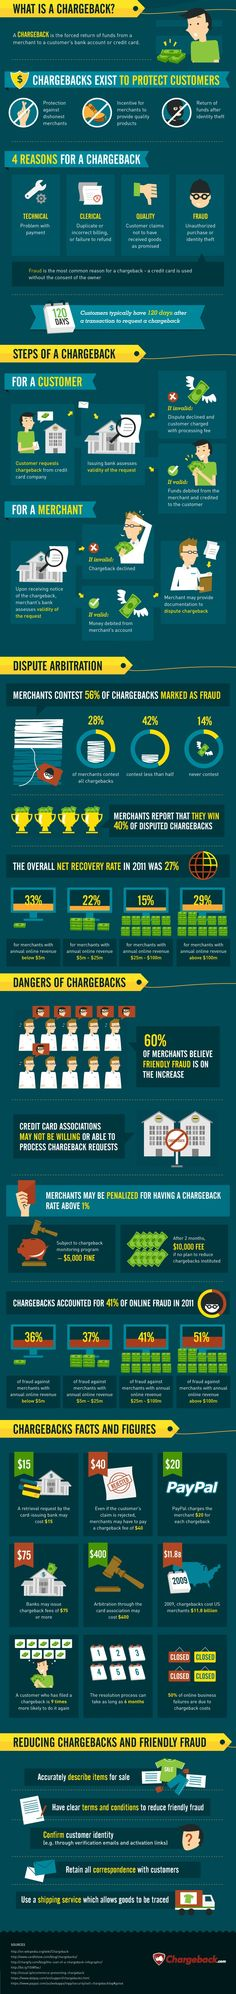 Chargebacks - Customer and Merchant Points of View [Infographic]